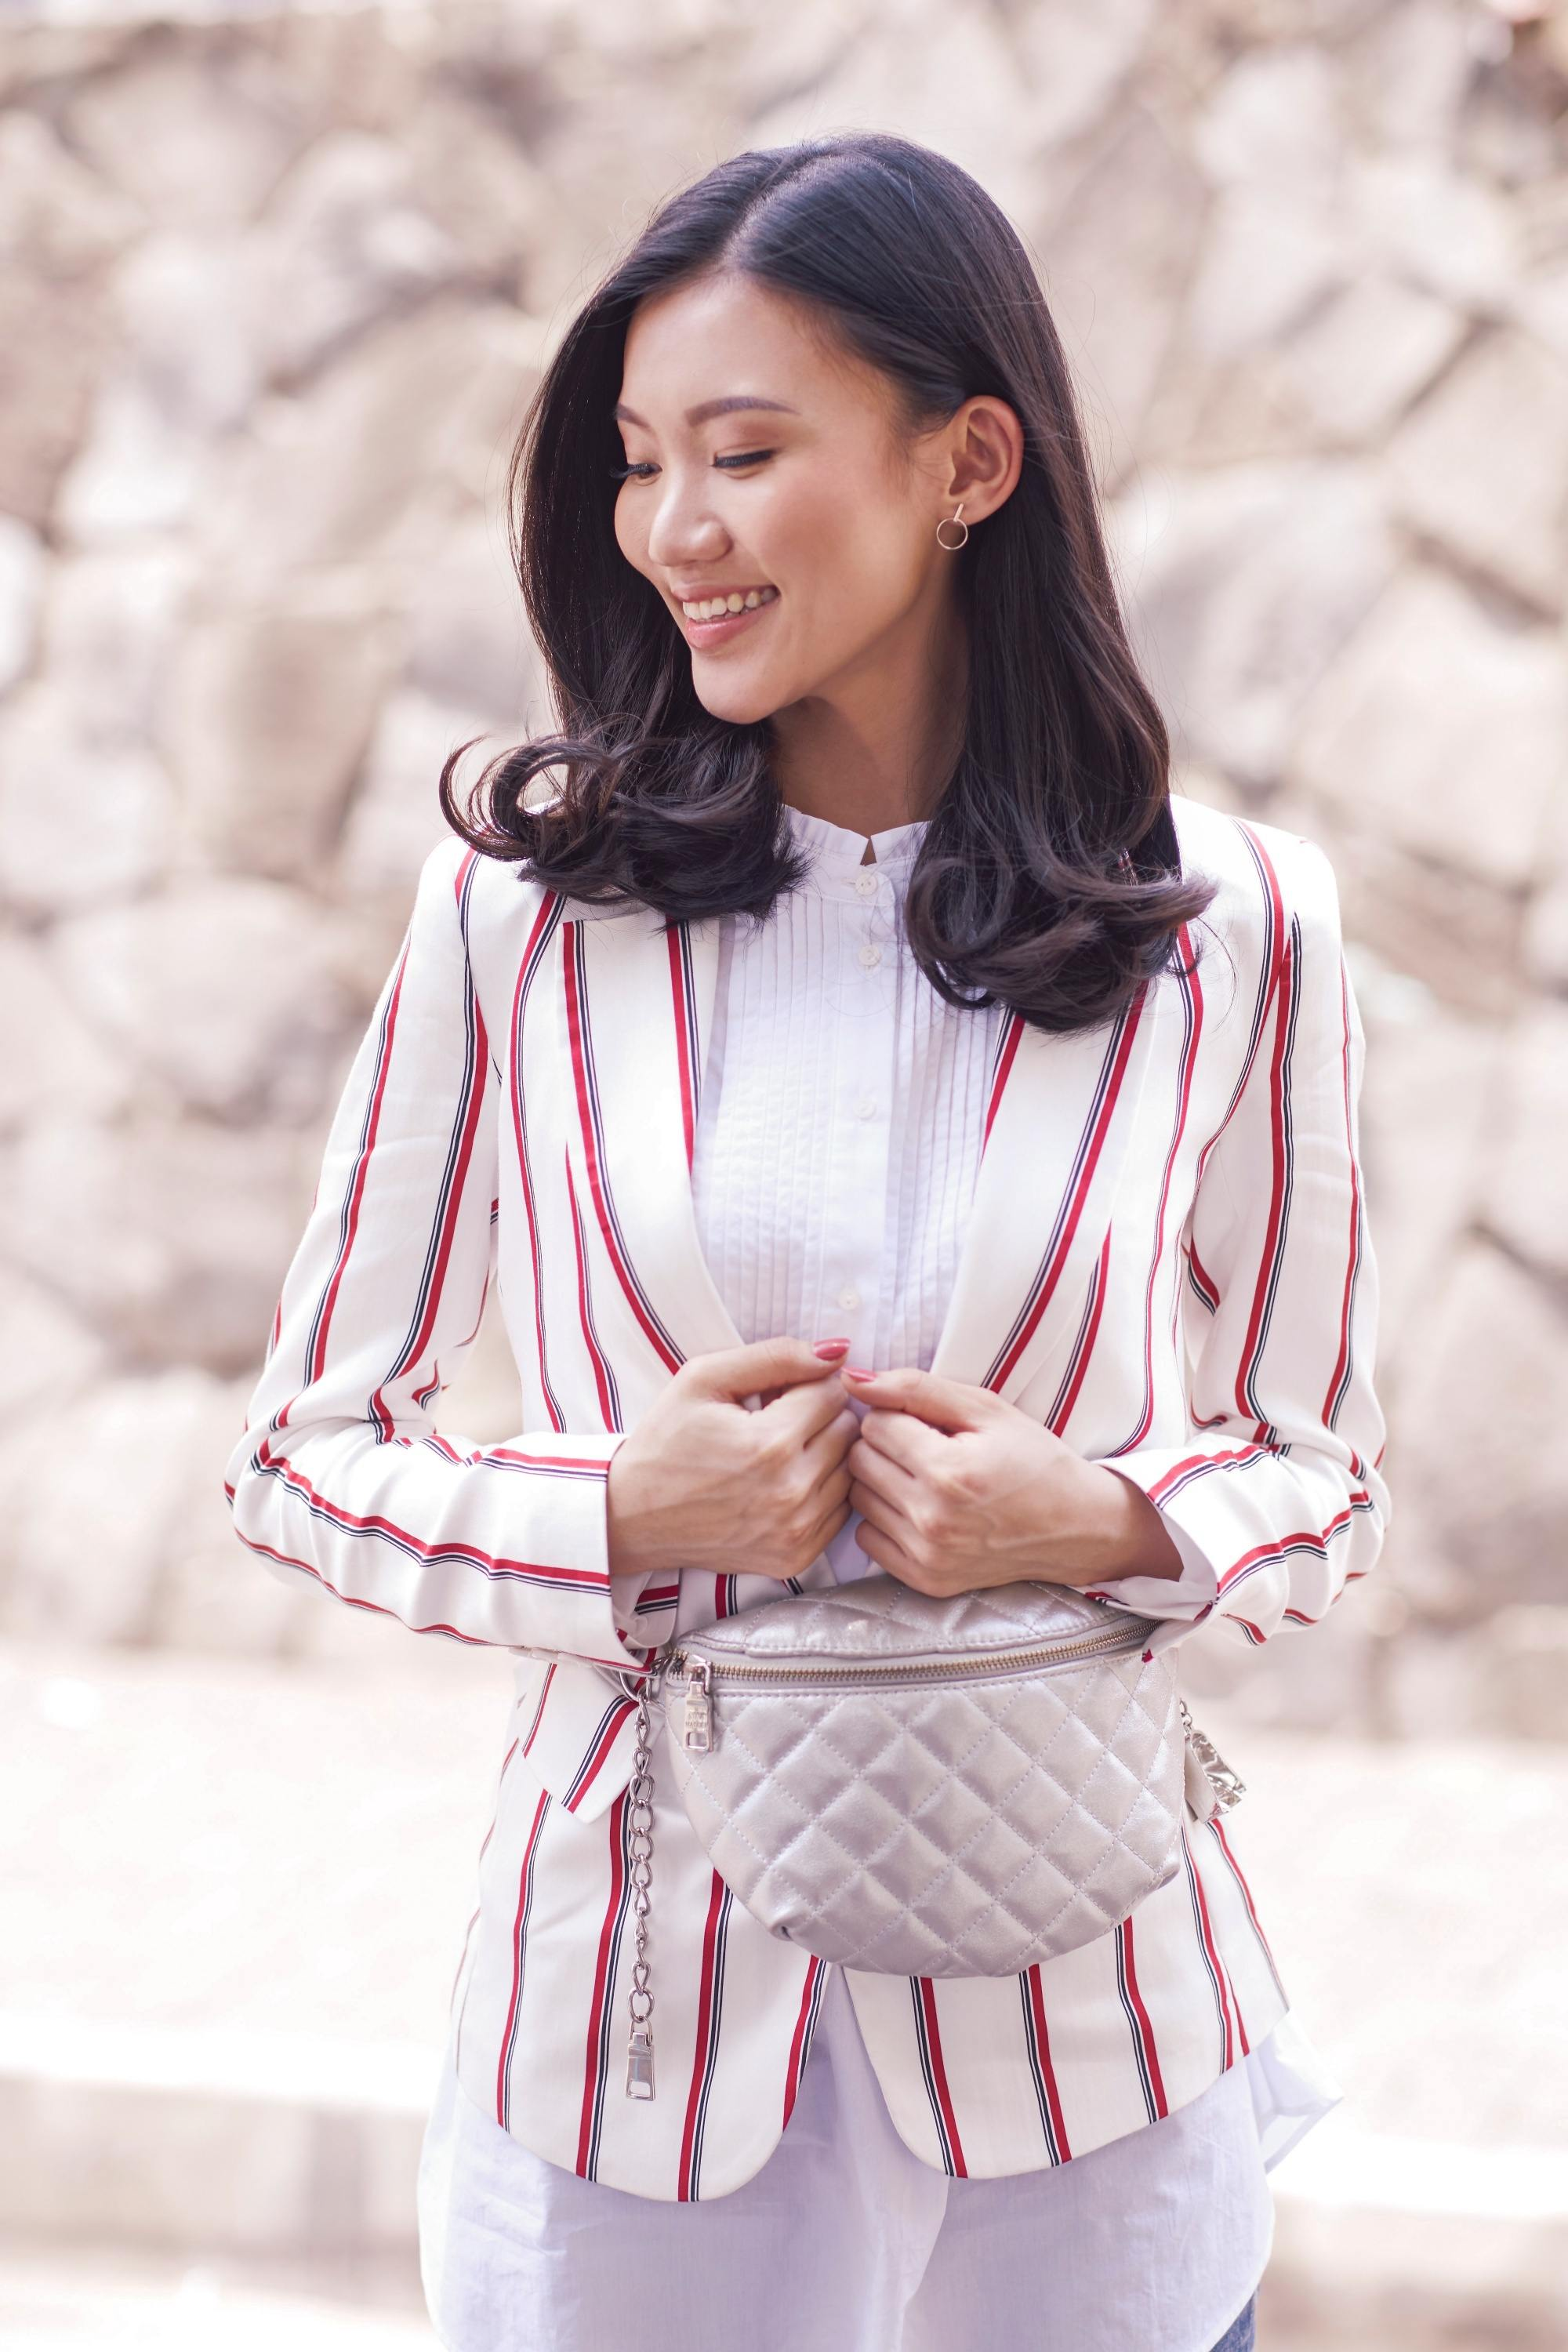 Asian woman with black blown out shoulder length hair wearing a striped suit